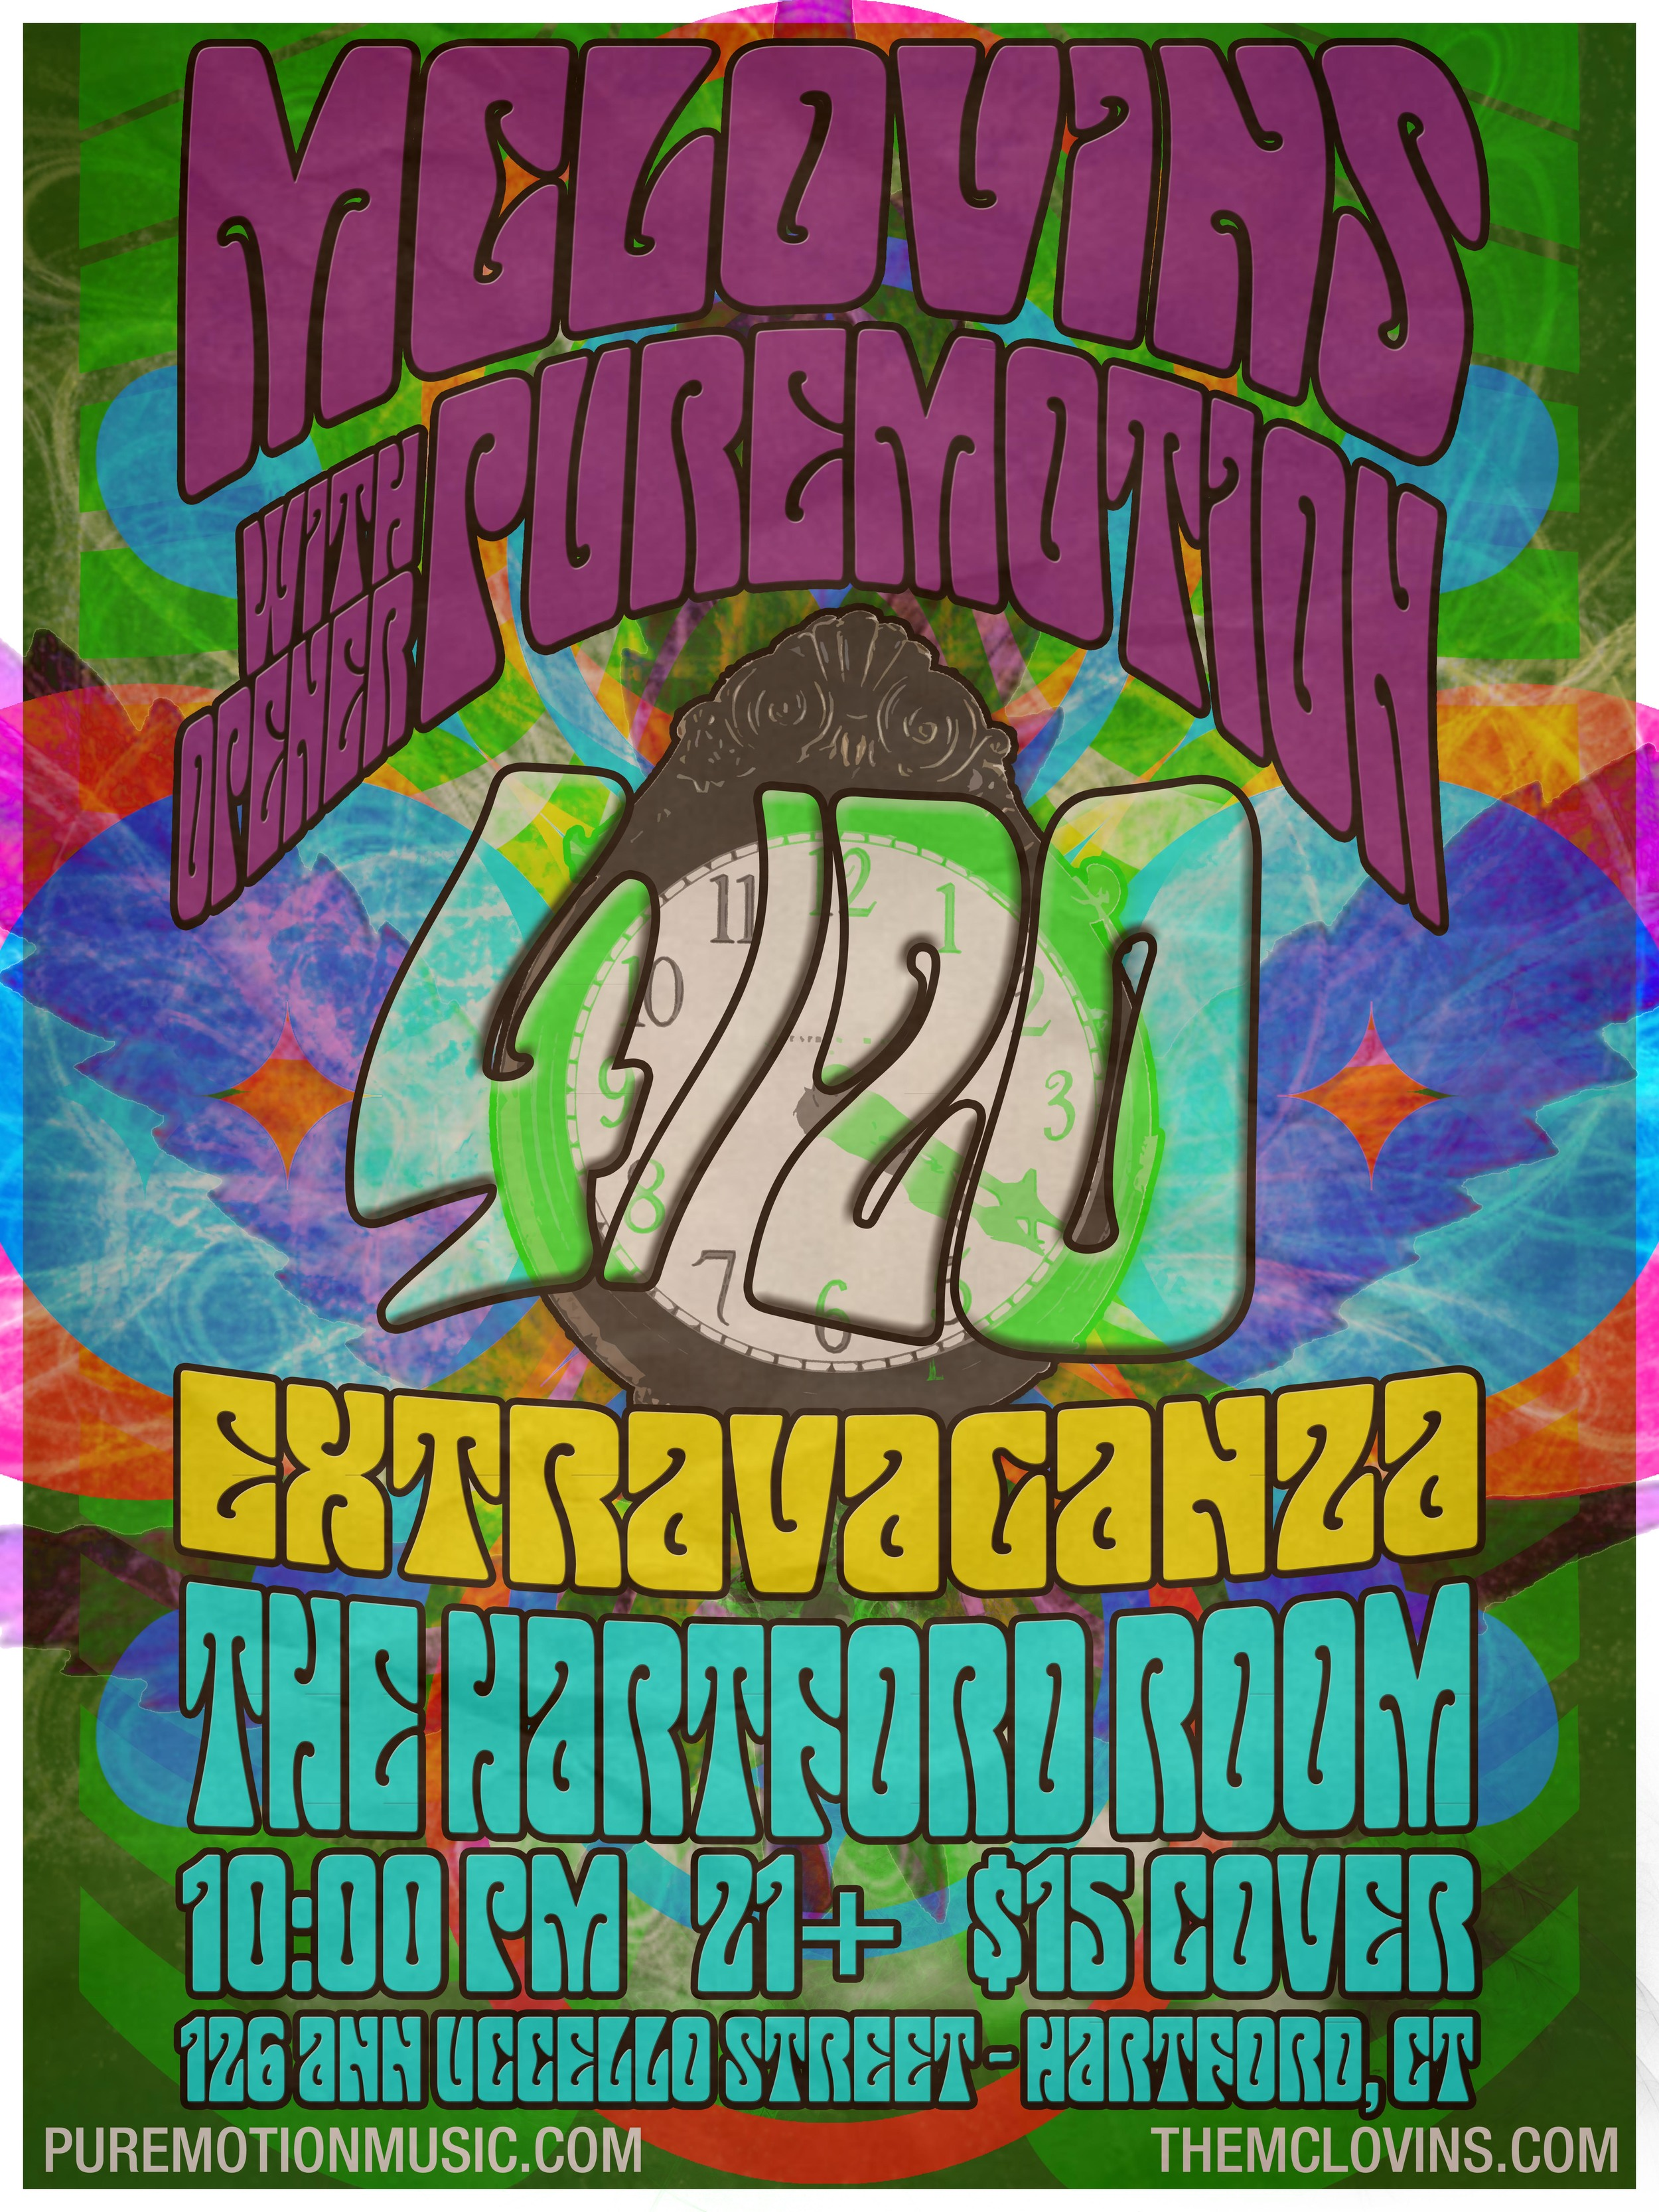 420 poster new small.jpg